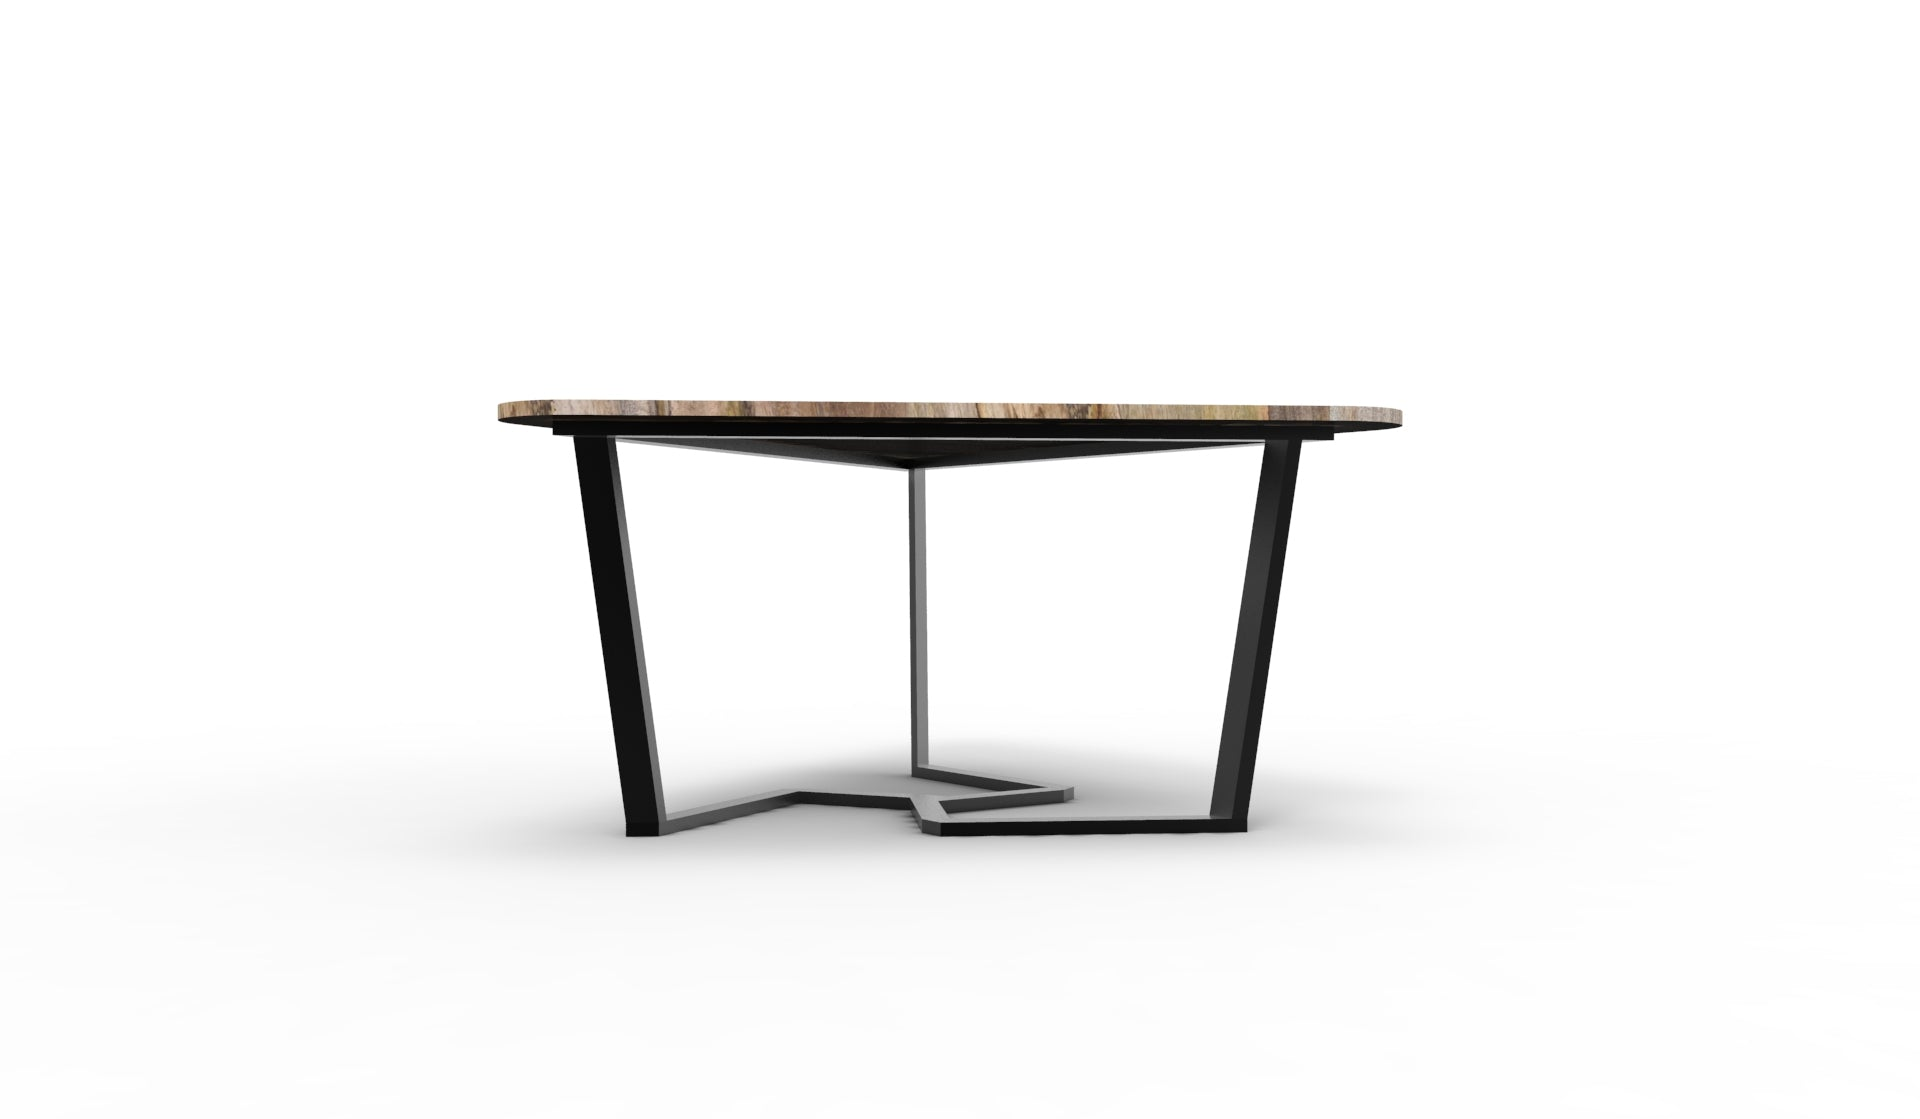 page products offerings available latest we img eport wood purchase tables conference table patience for still update you as are this our your product thank with